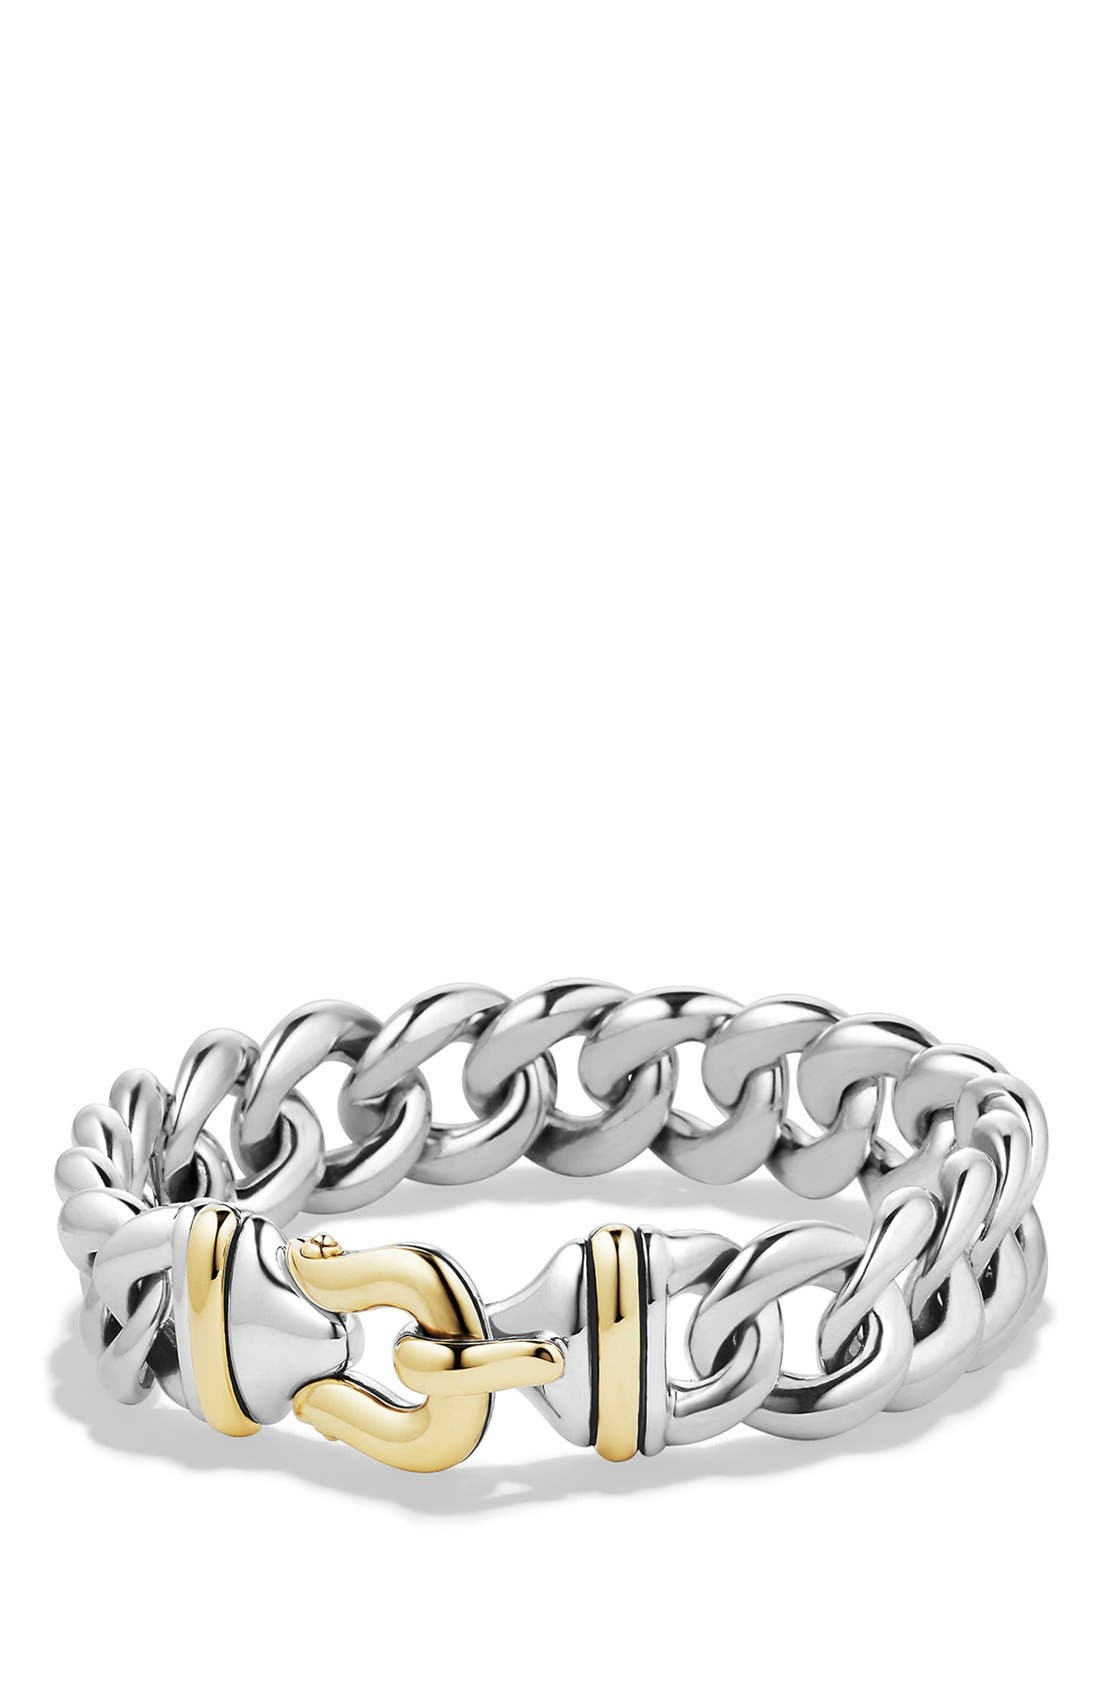 Main Image - David Yurman 'Cable Buckle' Buckle Single-Row Bracelet with Gold